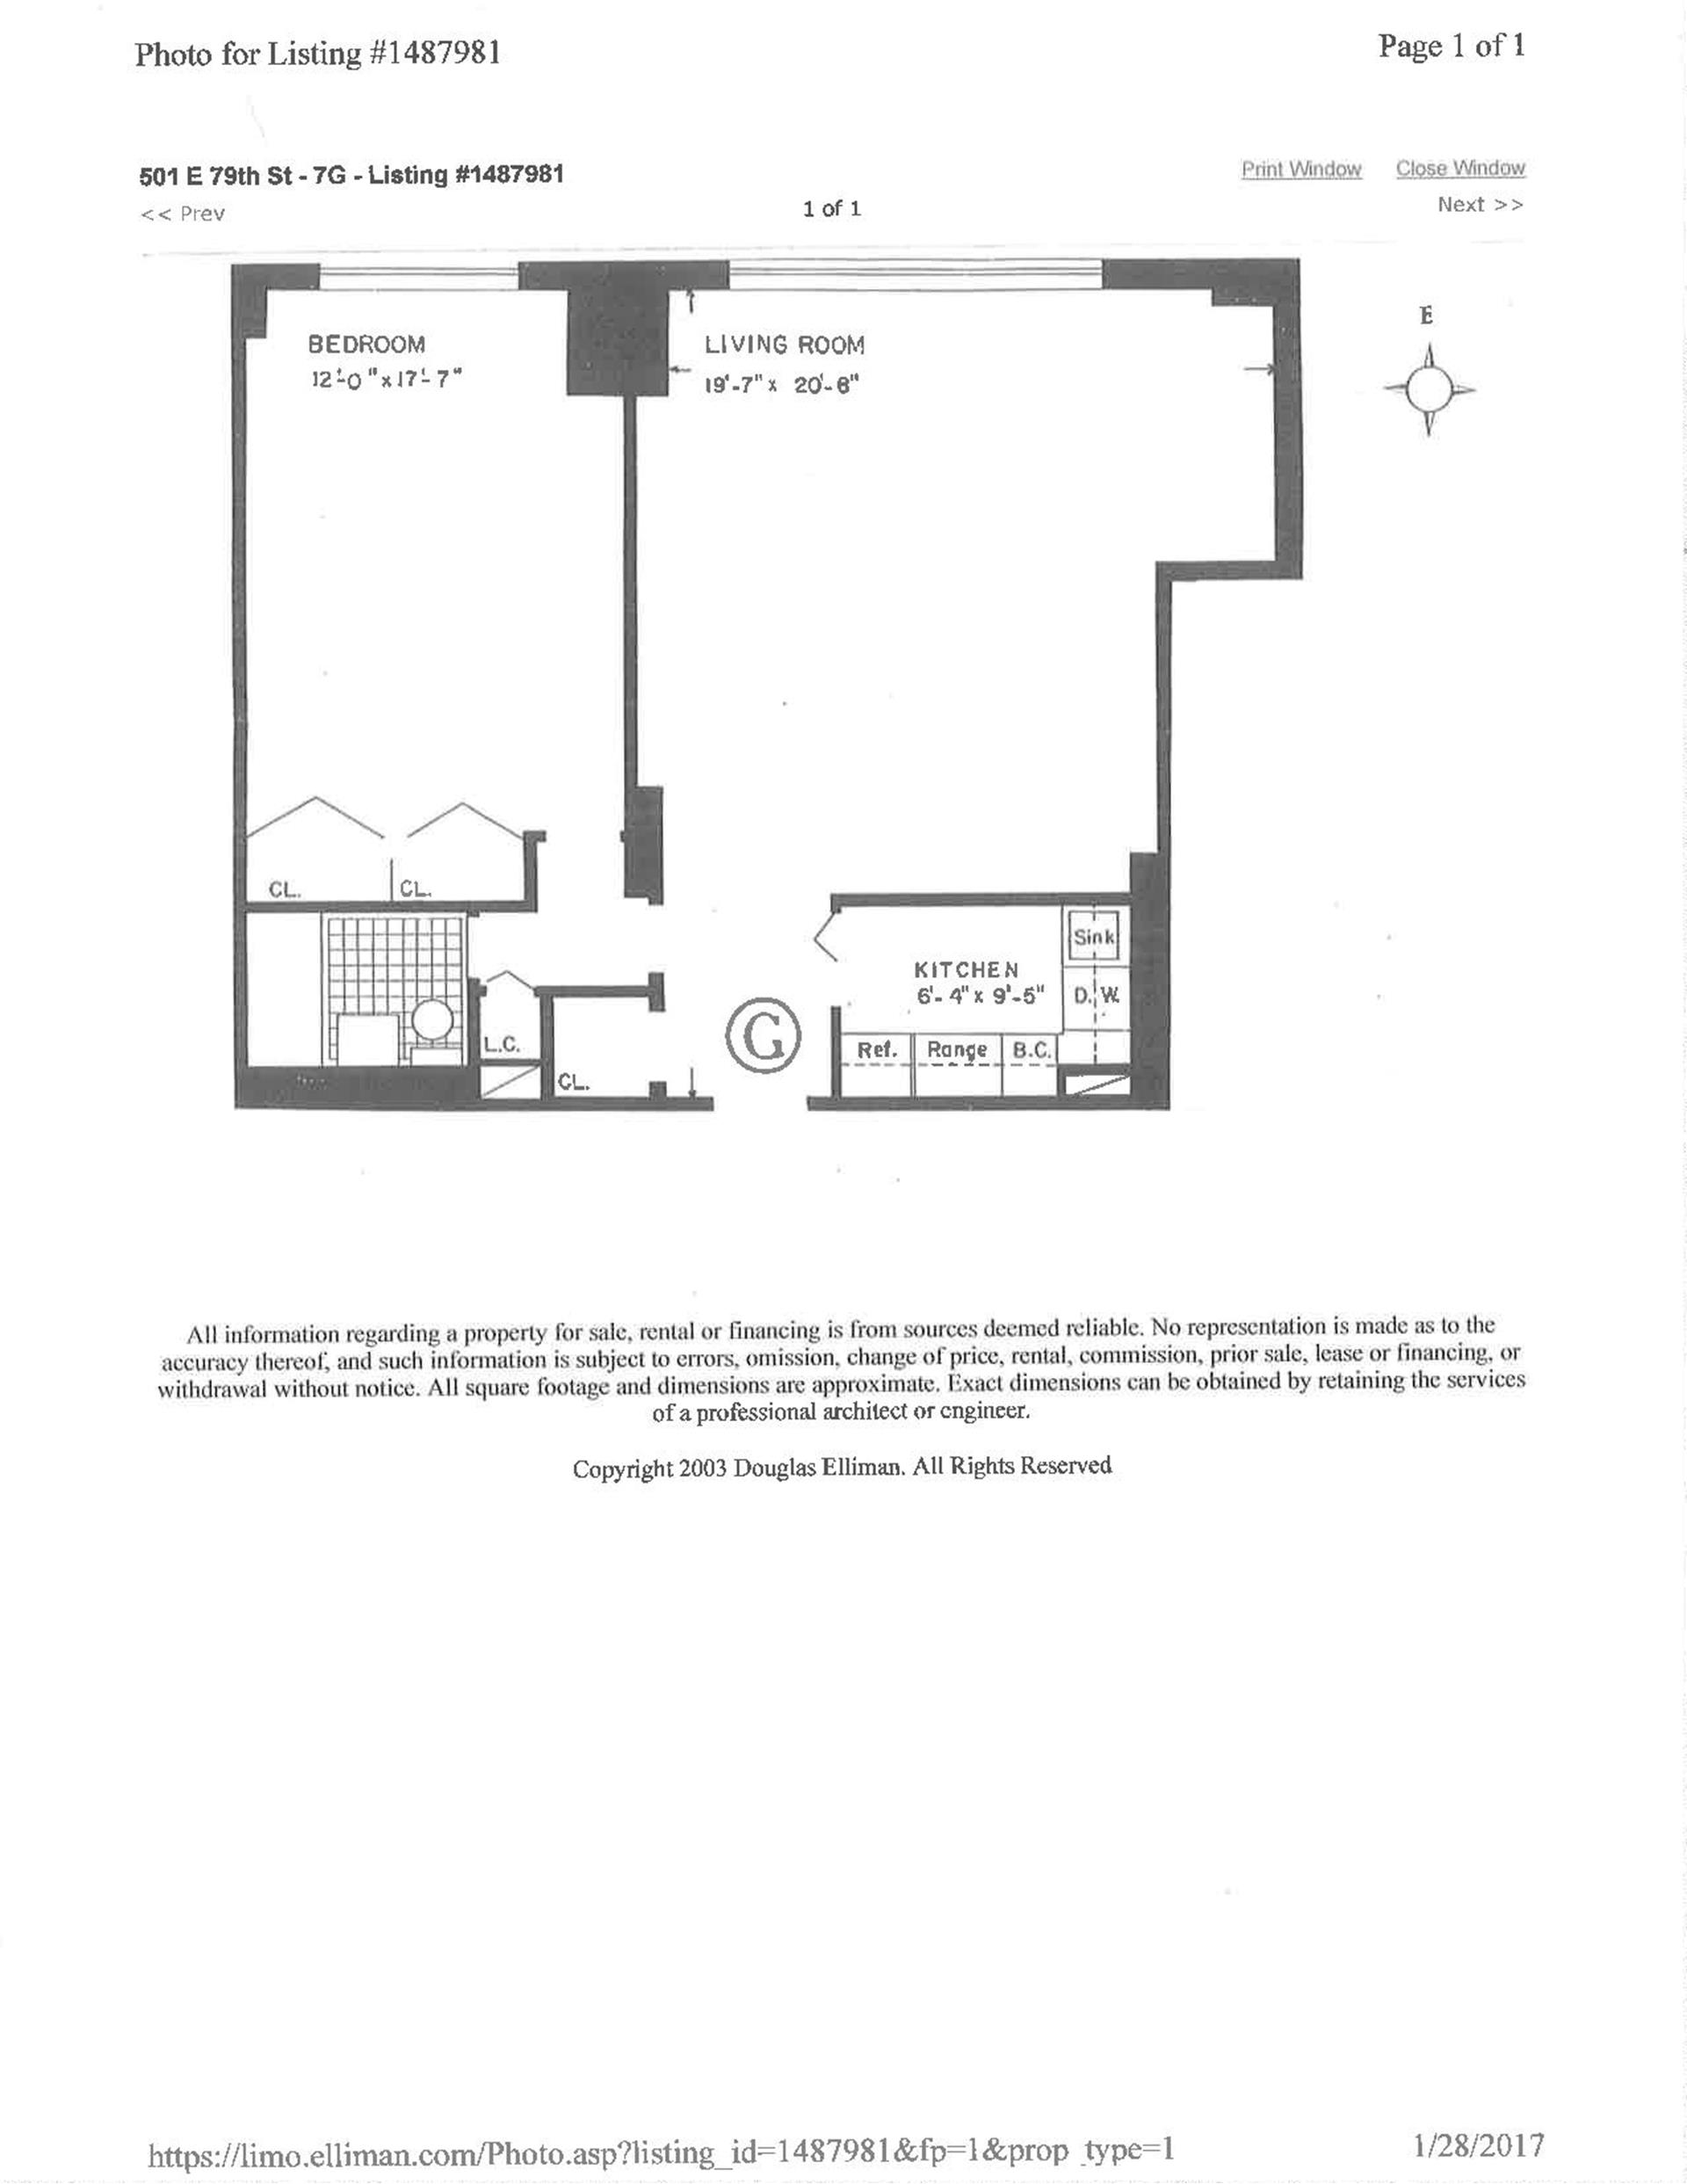 Floor plan of York Towers, 501 East 79th St, 7G - Upper East Side, New York